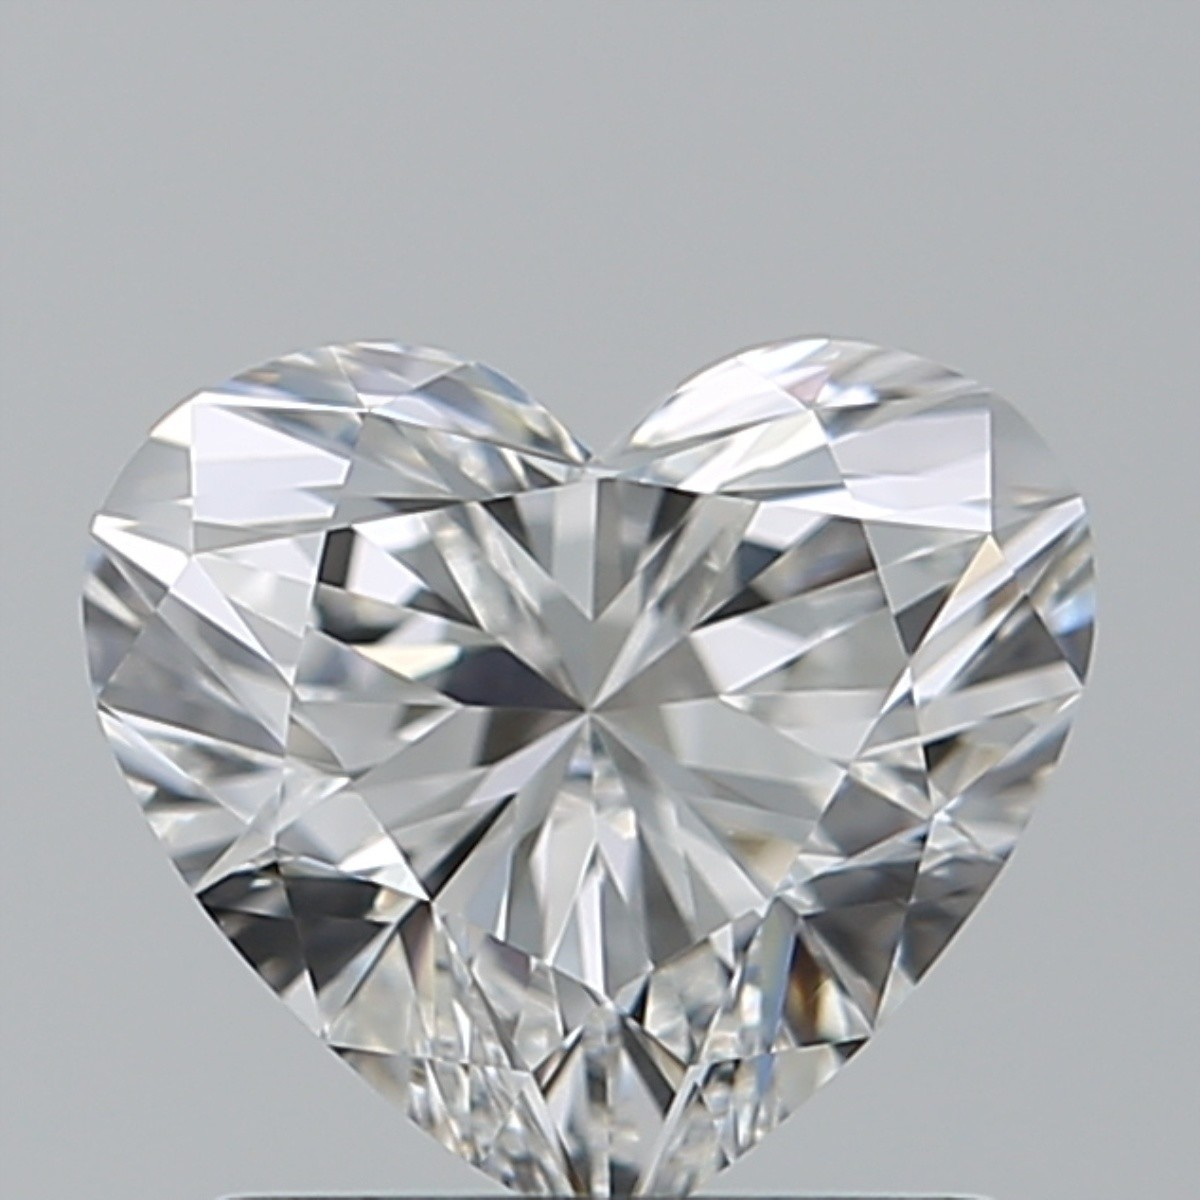 1.03 Carat Heart Diamond (E/VVS1)